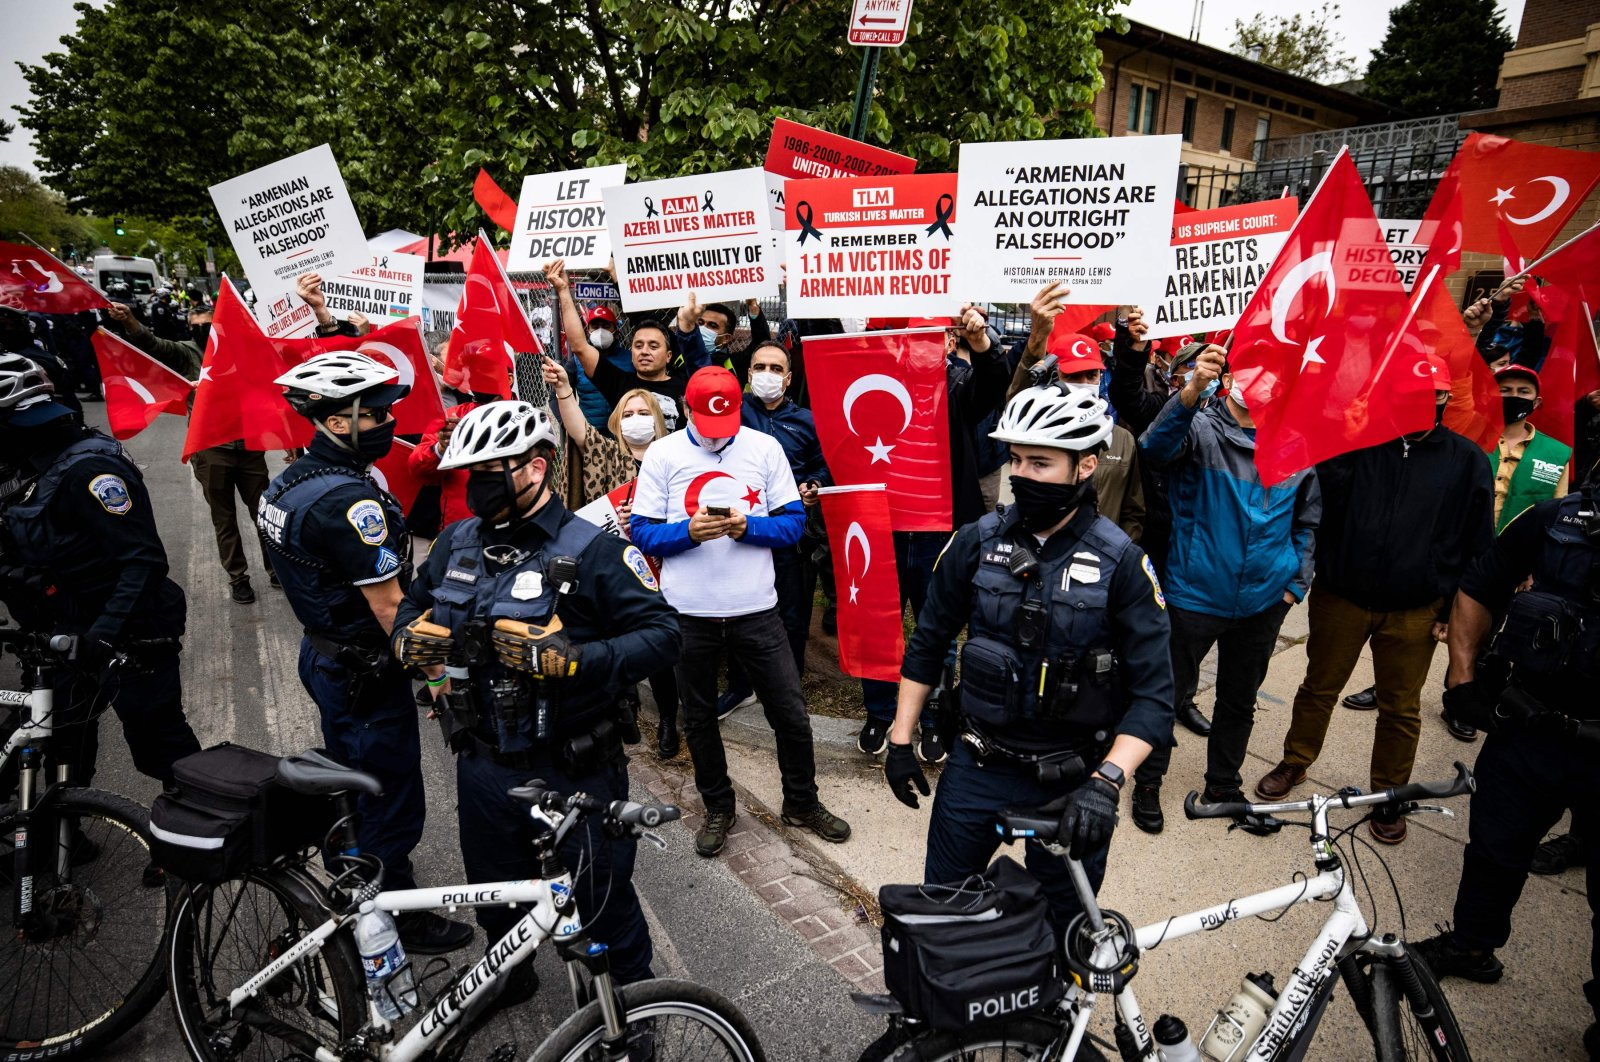 Turkish protesters are kept separated from Armenian protestors to avoid confrontation in front of the Turkish Embassy on the 106th anniversary of the 1915 events, in Washington, D.C., U.S., April 24, 2021. (AFP Photo)